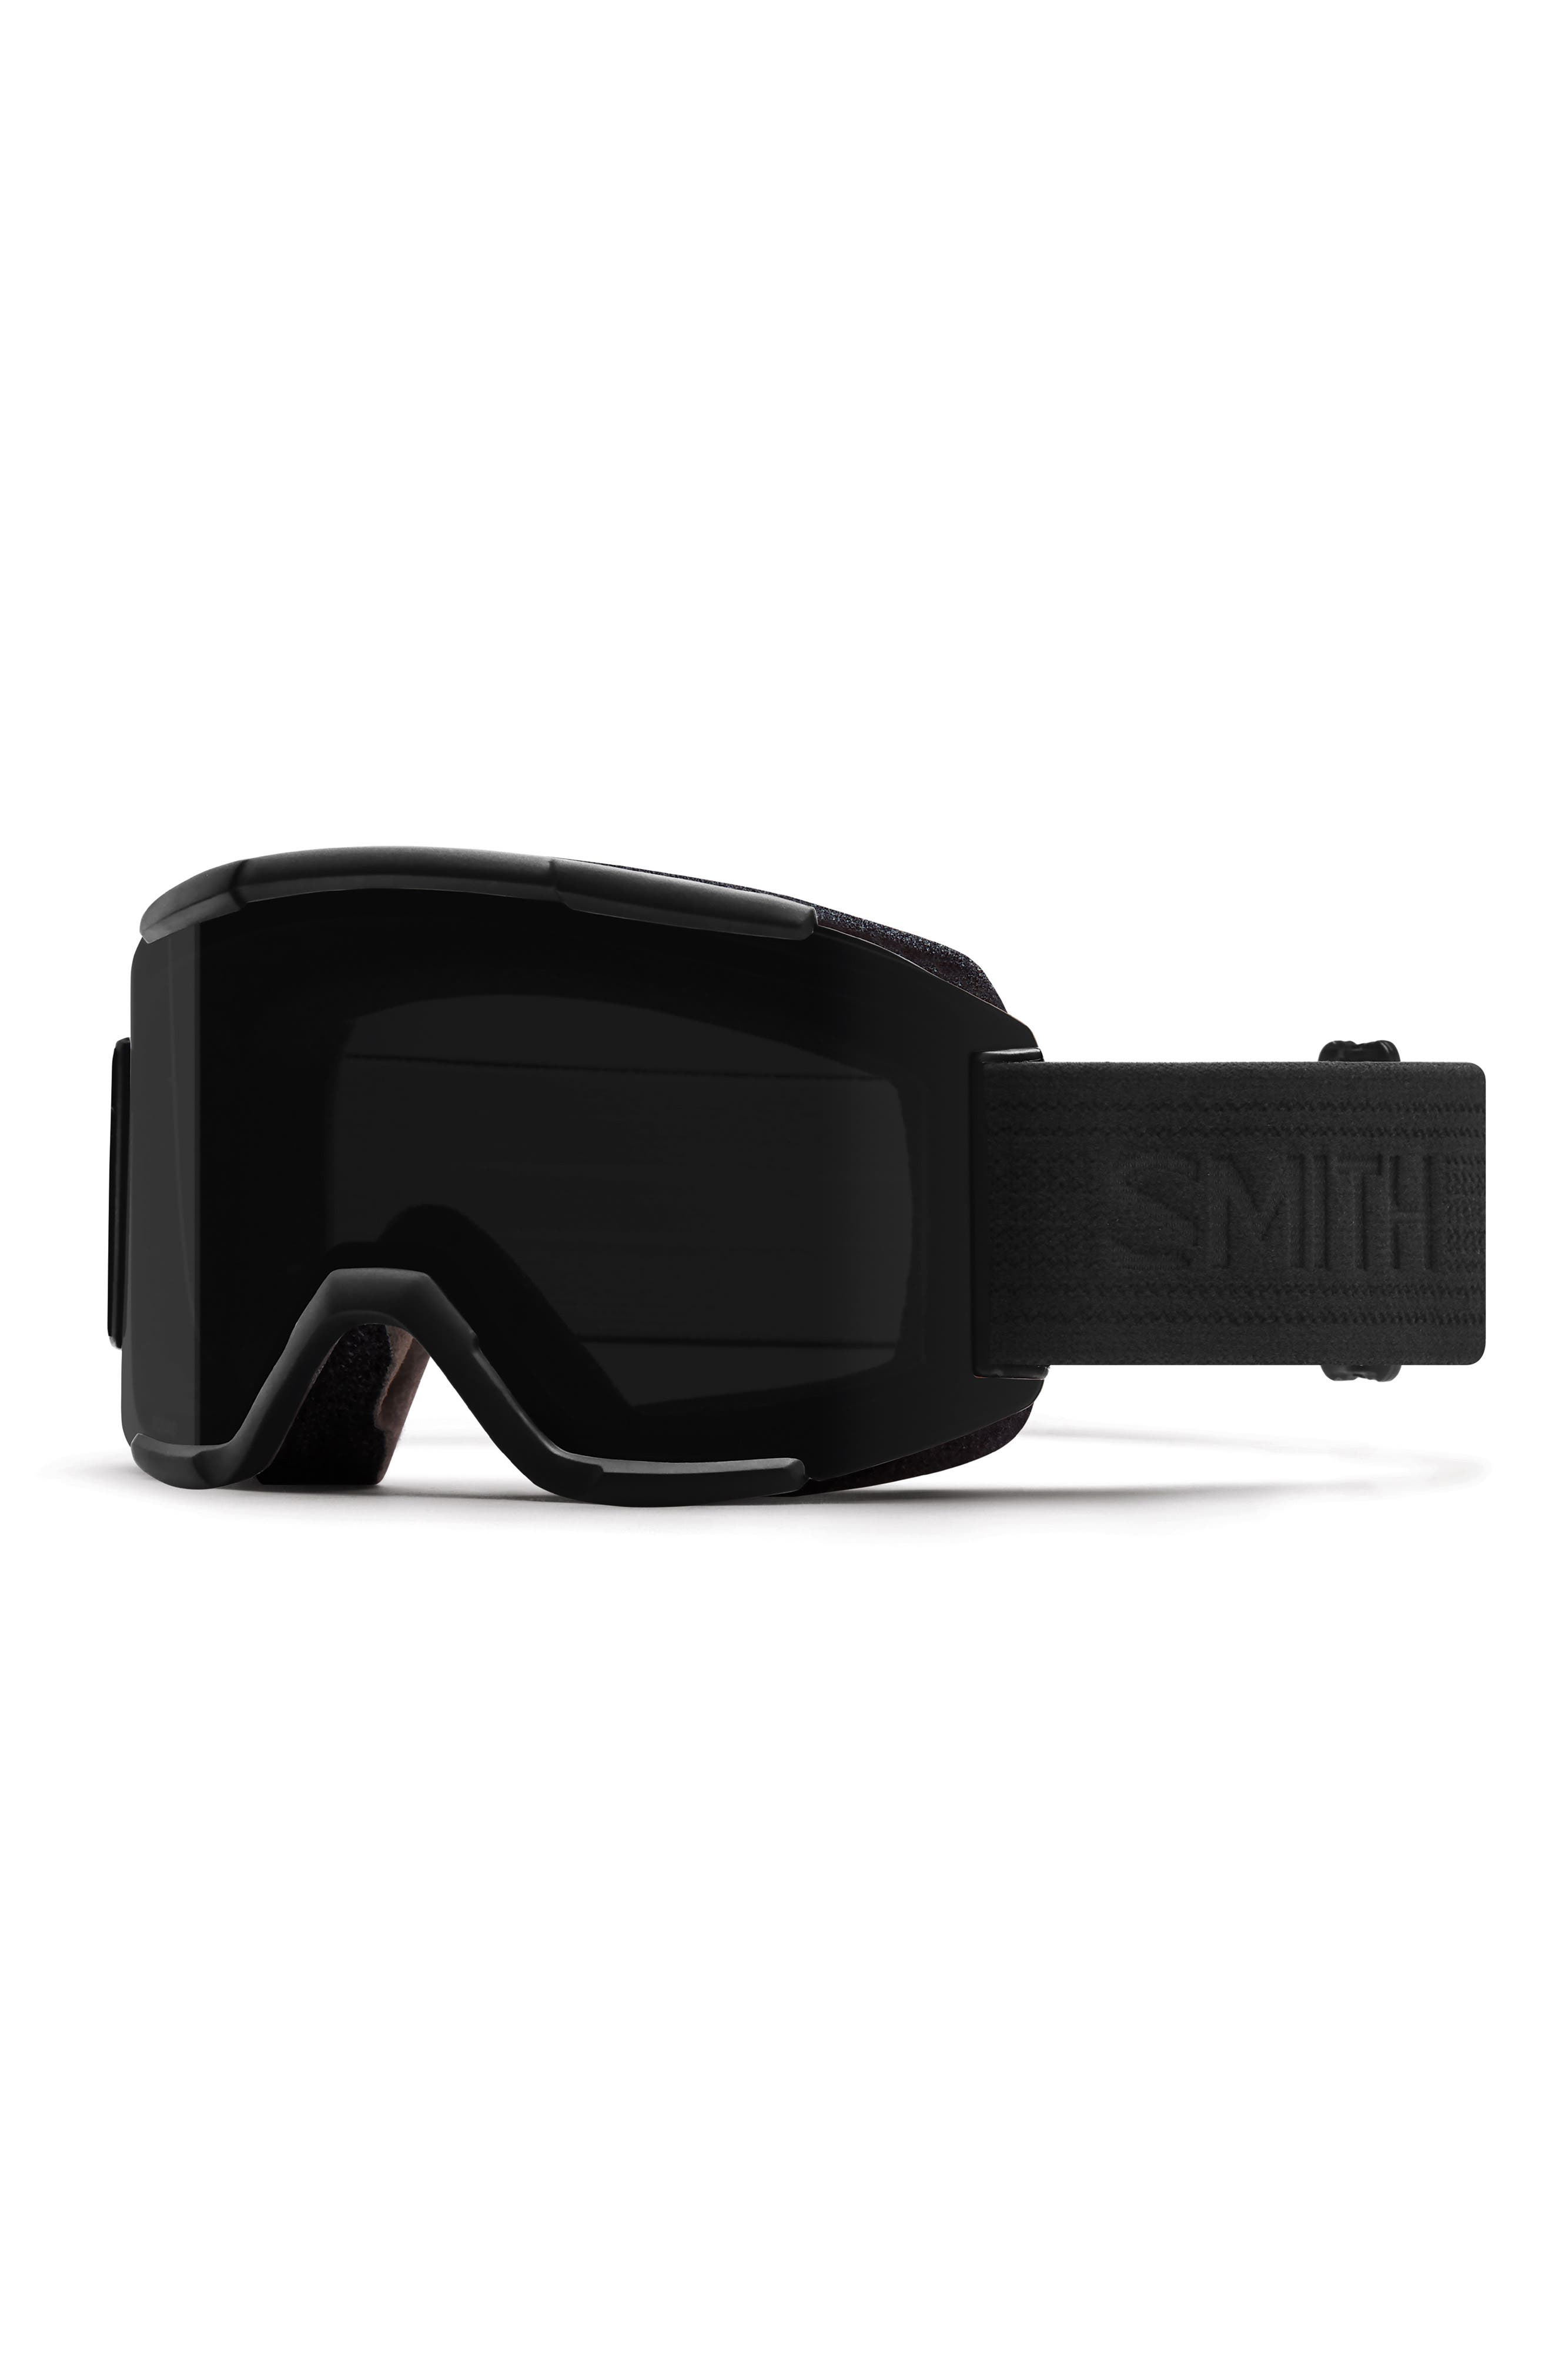 Squad Chromapop 180mm Snow Goggles,                         Main,                         color, Blackout